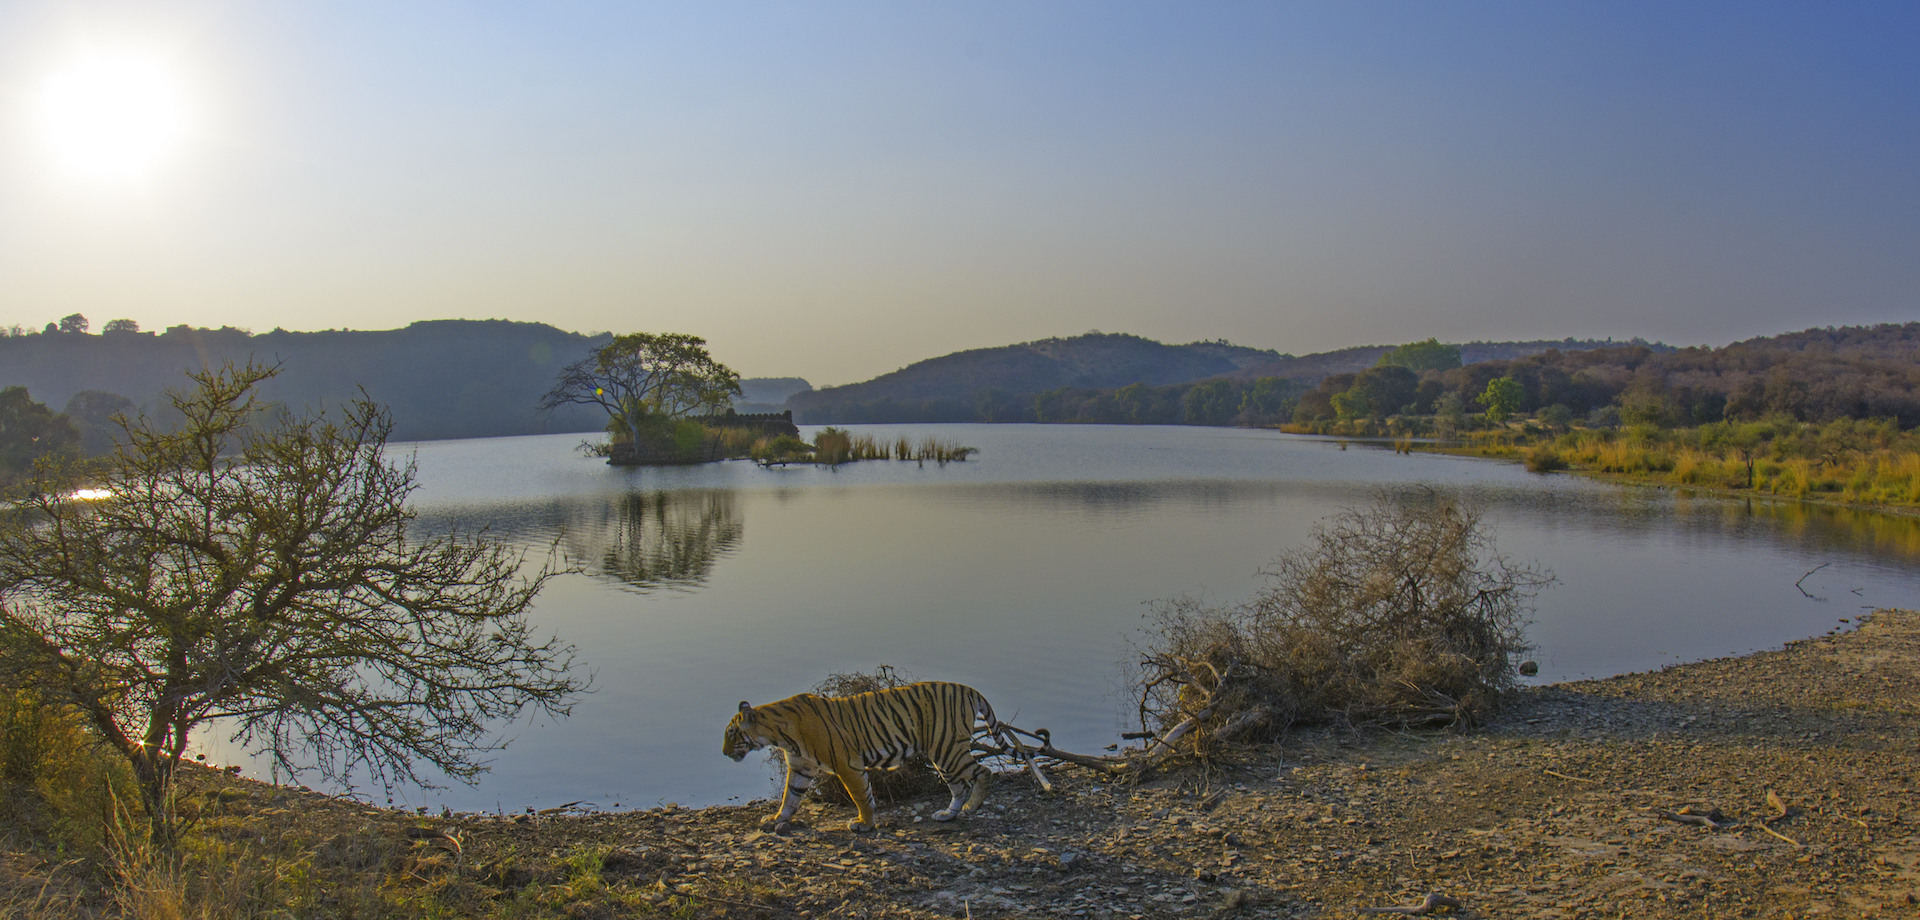 Few lucky ones get to witness this classic Ranthambore scene: A tiger walking across the banks of Padam Talao with the forest and the park's iconic heritage structures in the background. Photo: Dhritiman Mukherjee